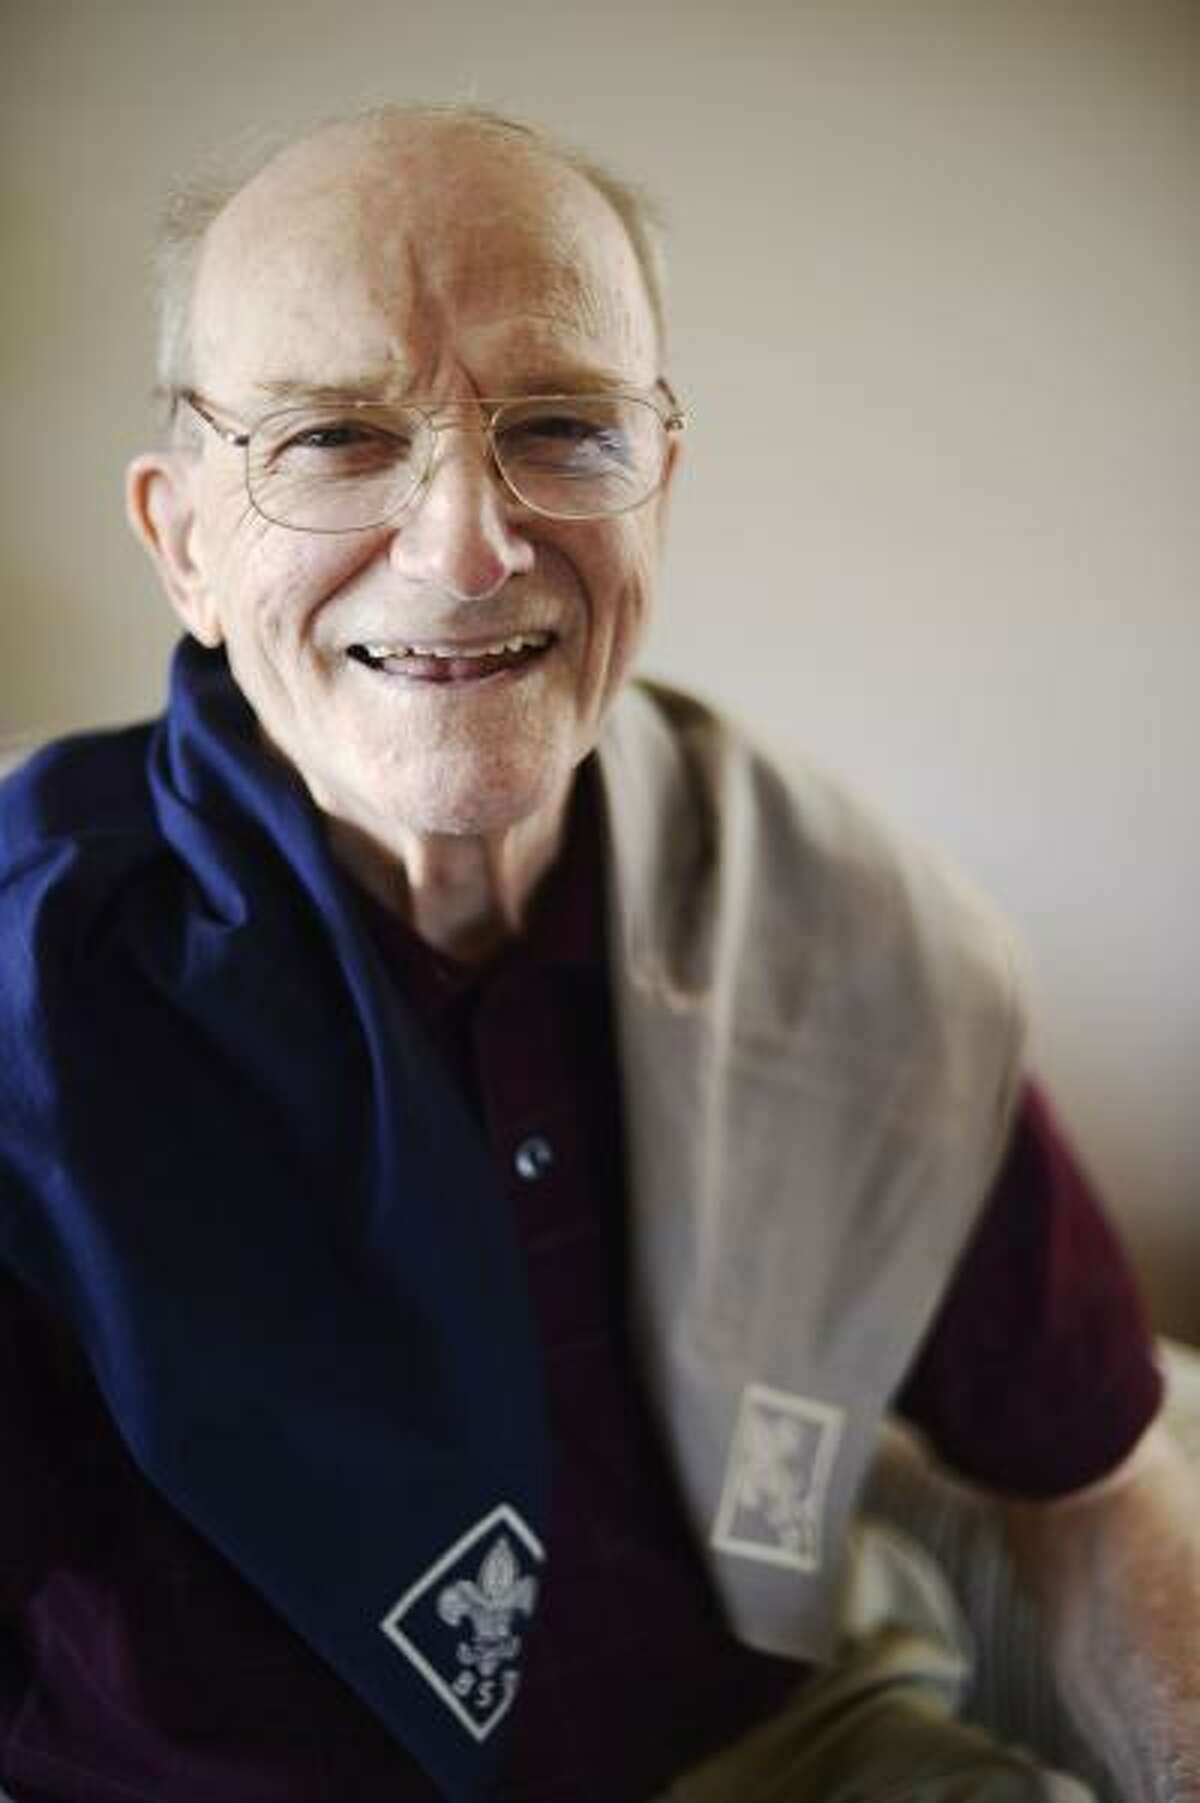 Richard D. Kohler poses wearing the Boy Scout kerchief given to him in 1938, when he helped a Civil War veteran during the 75th anniversary at Gettysburg.